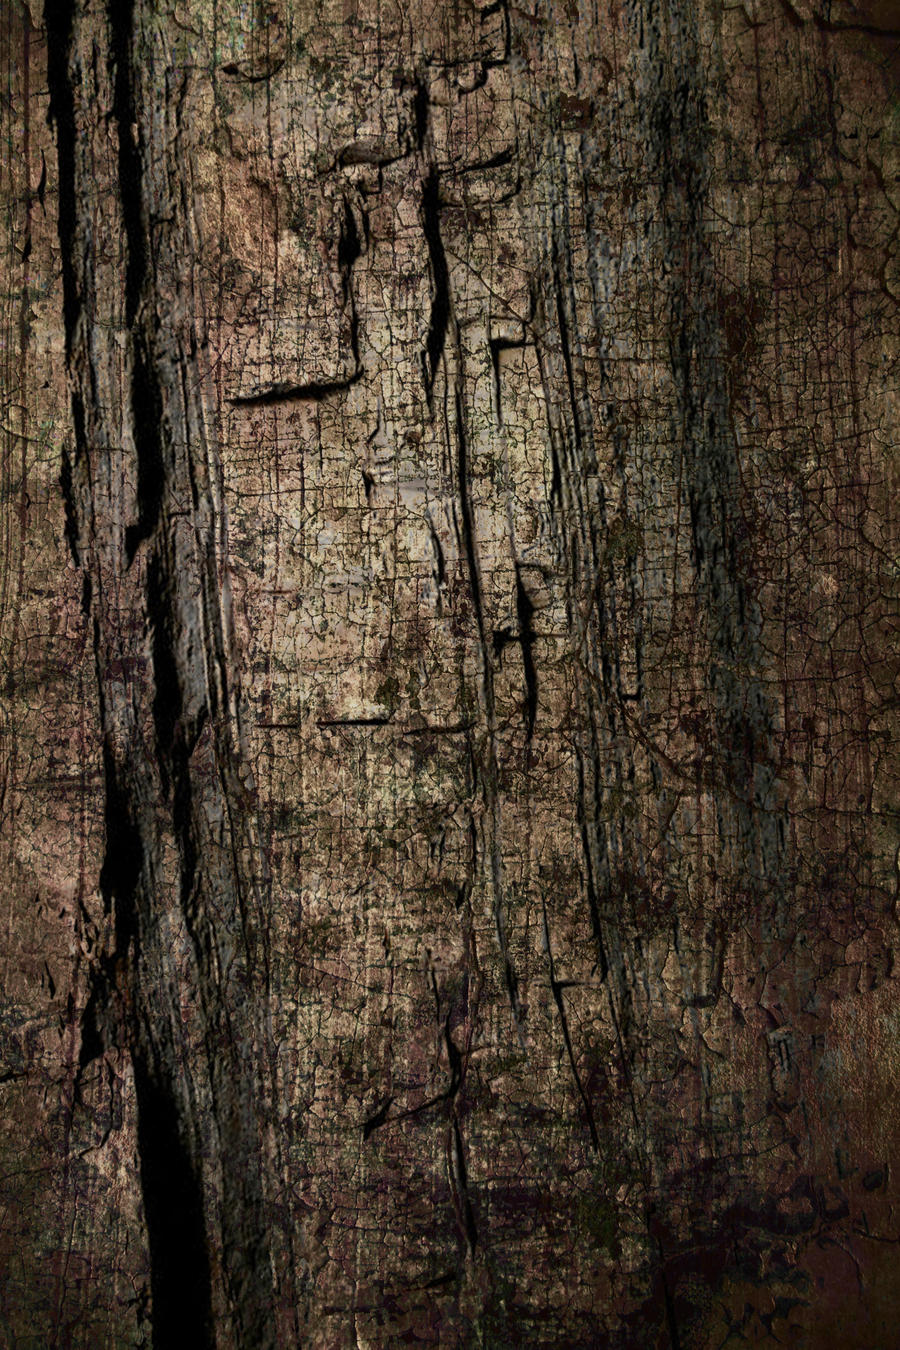 Tree Bark-Texture by dirtygentlemen